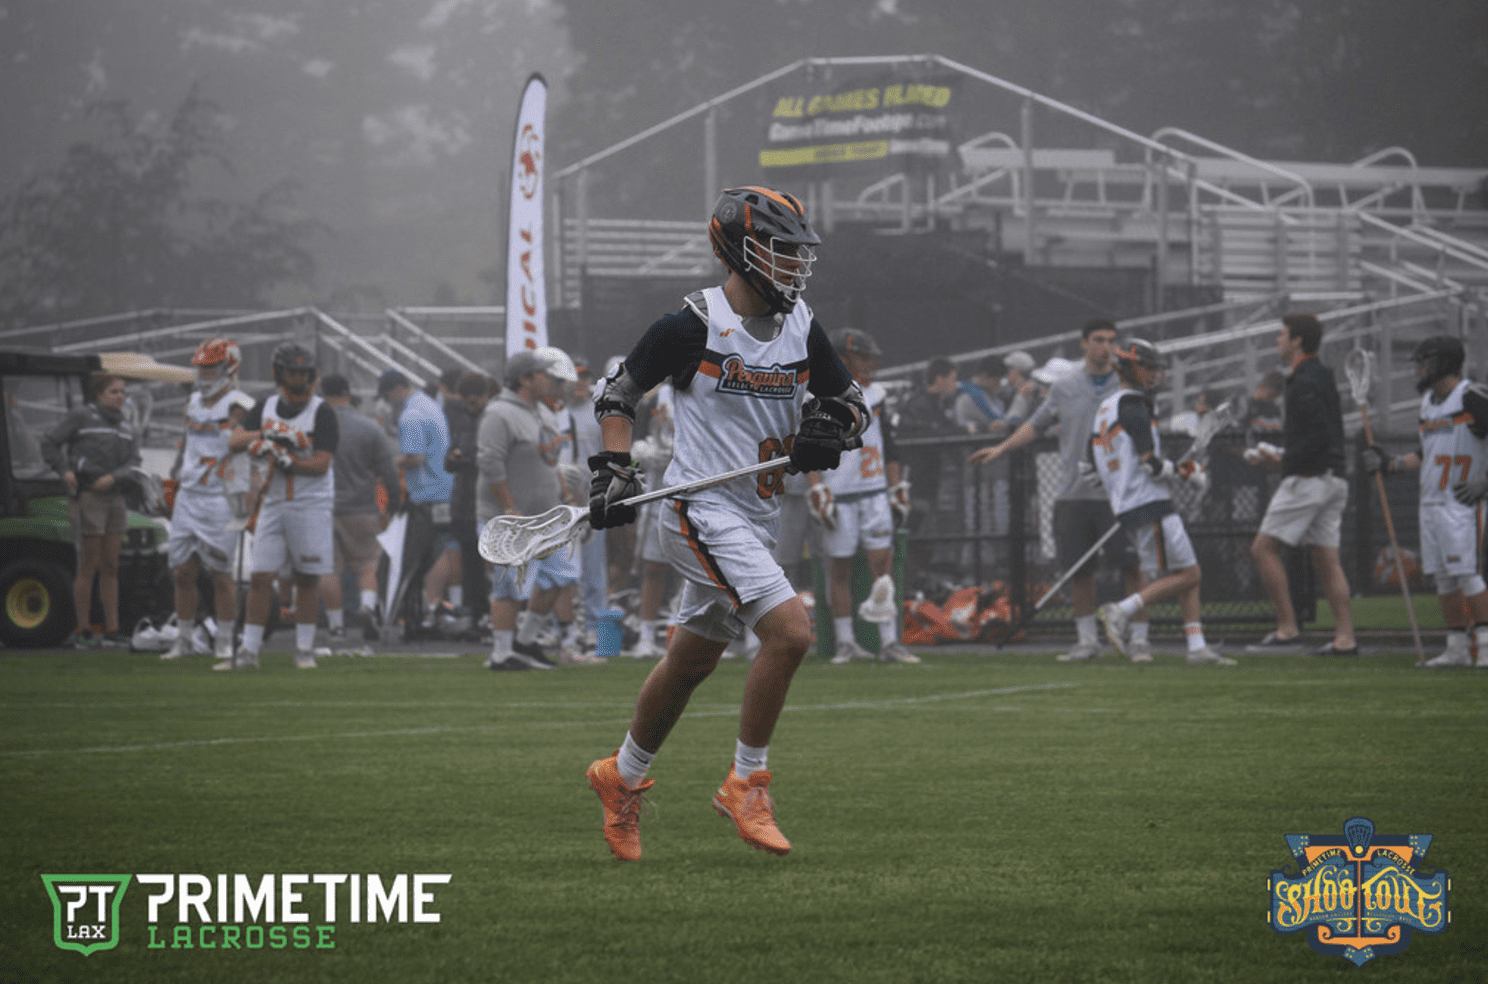 primetime lacrosse tournament